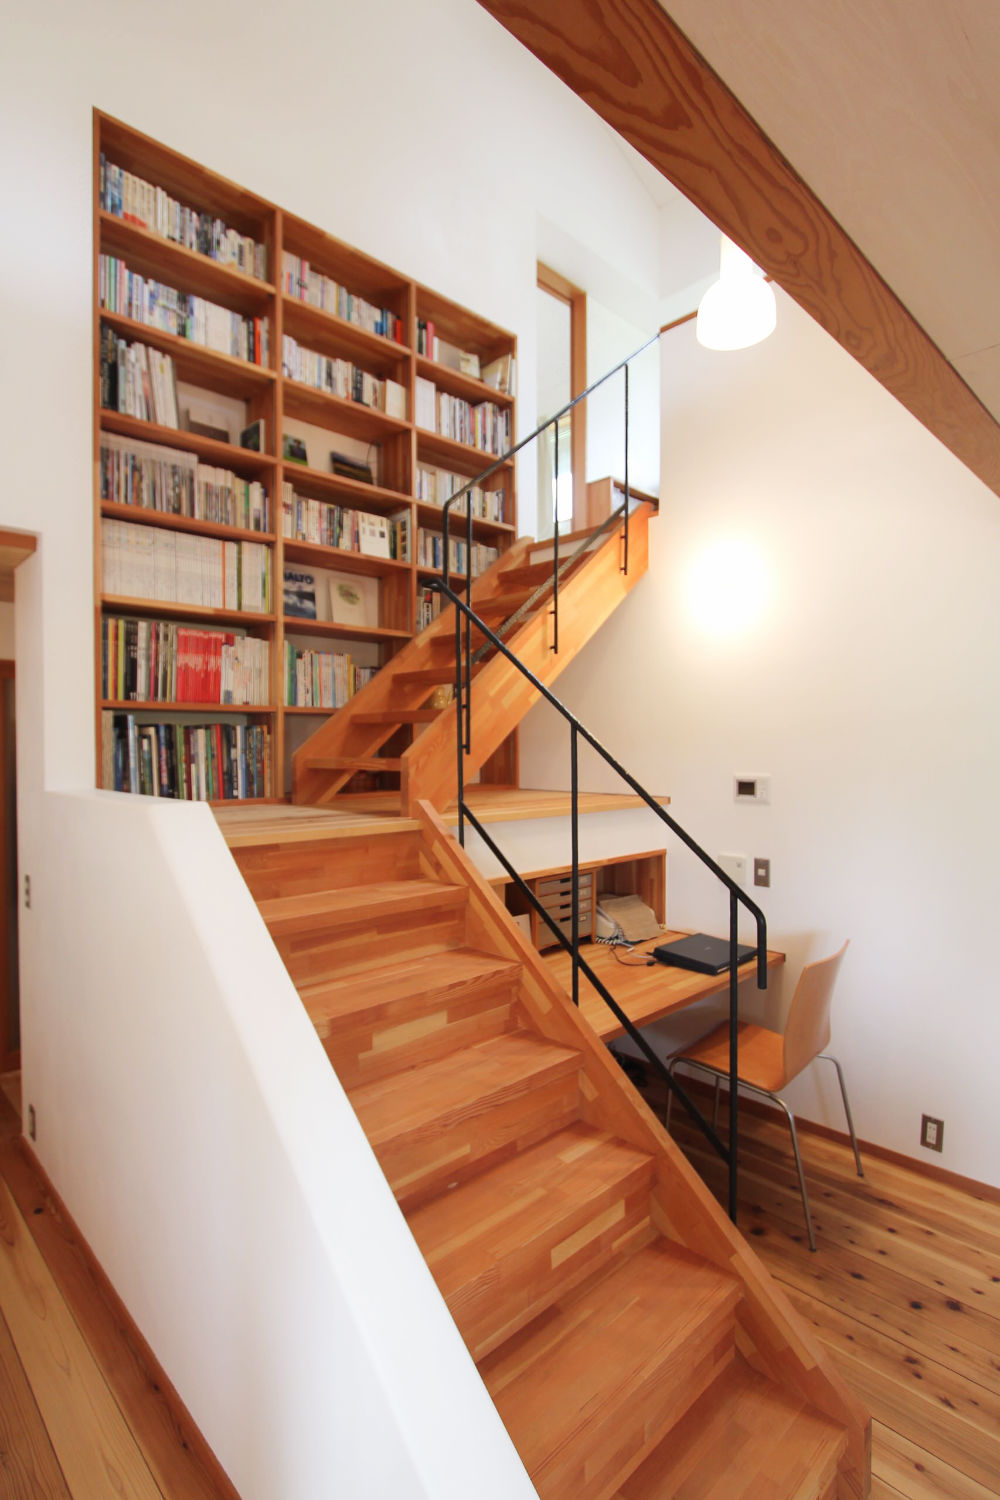 library-wall-in-middle-of-stair-step-bookcase